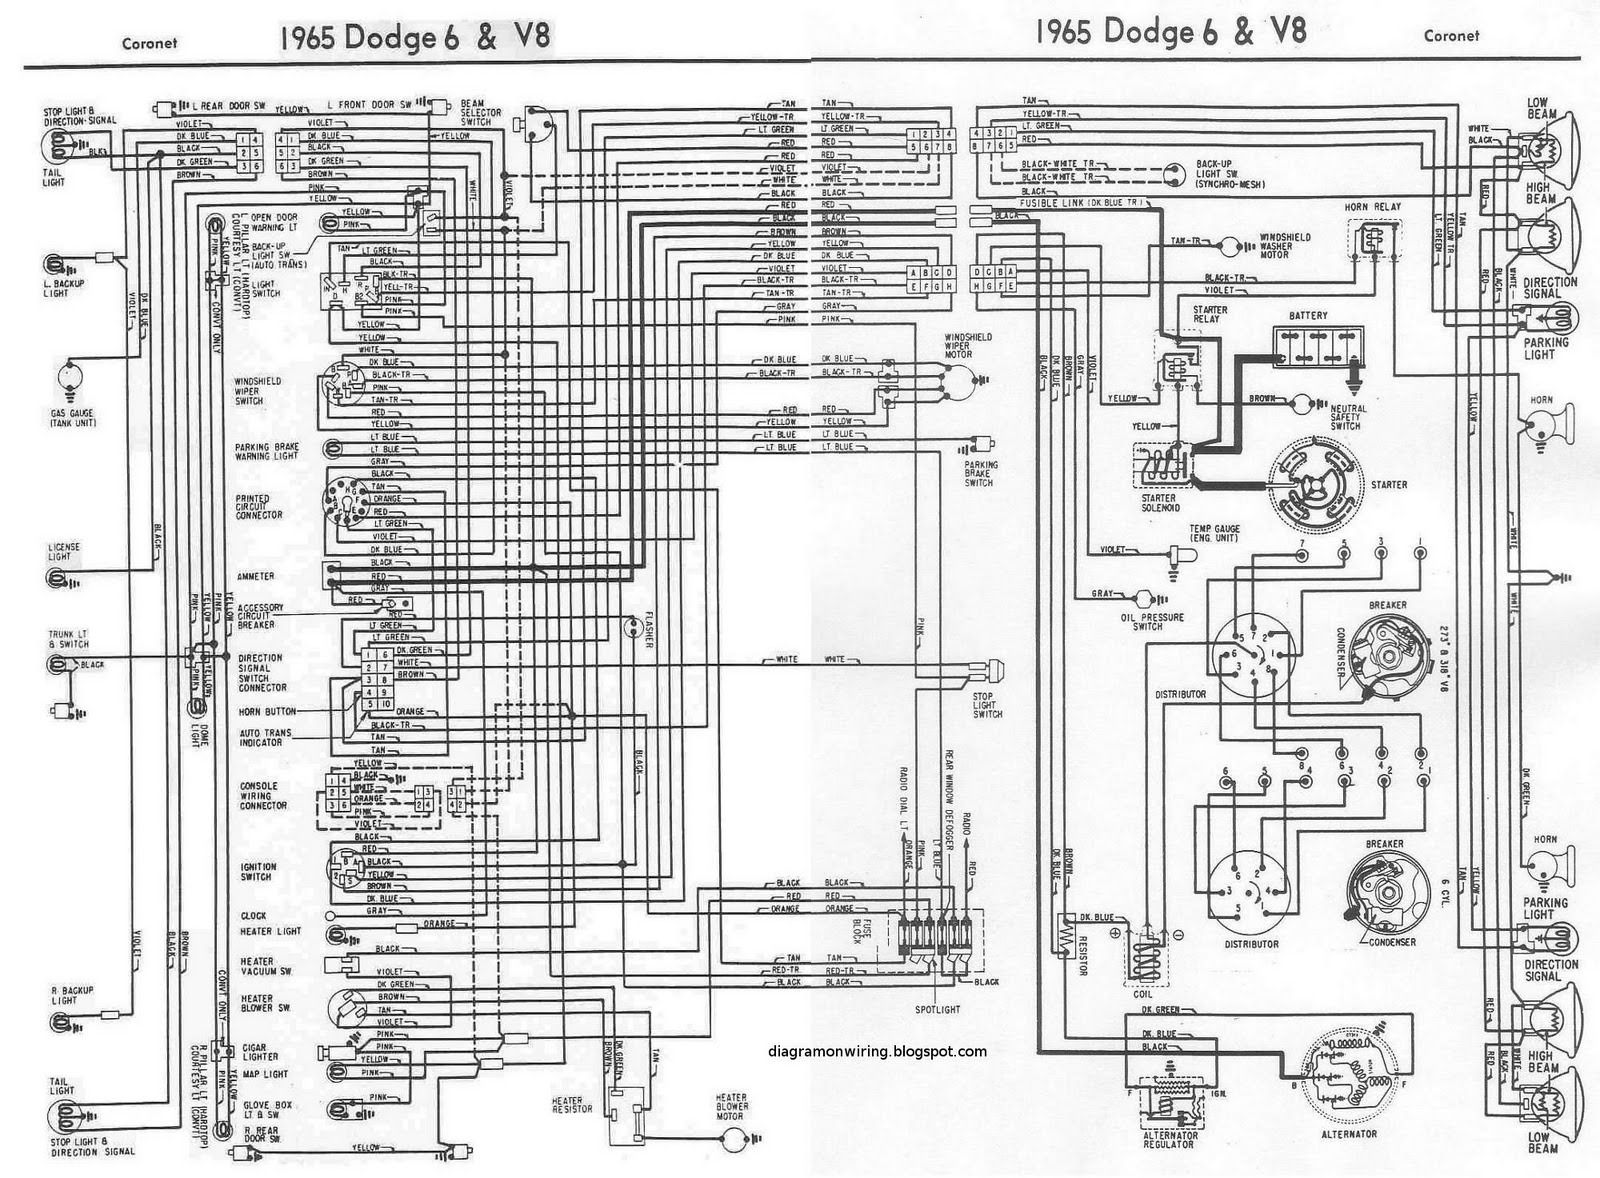 hight resolution of wiring diagram for 1966 dodge coronet wiring diagram expert wiring diagram for 1966 dodge coronet